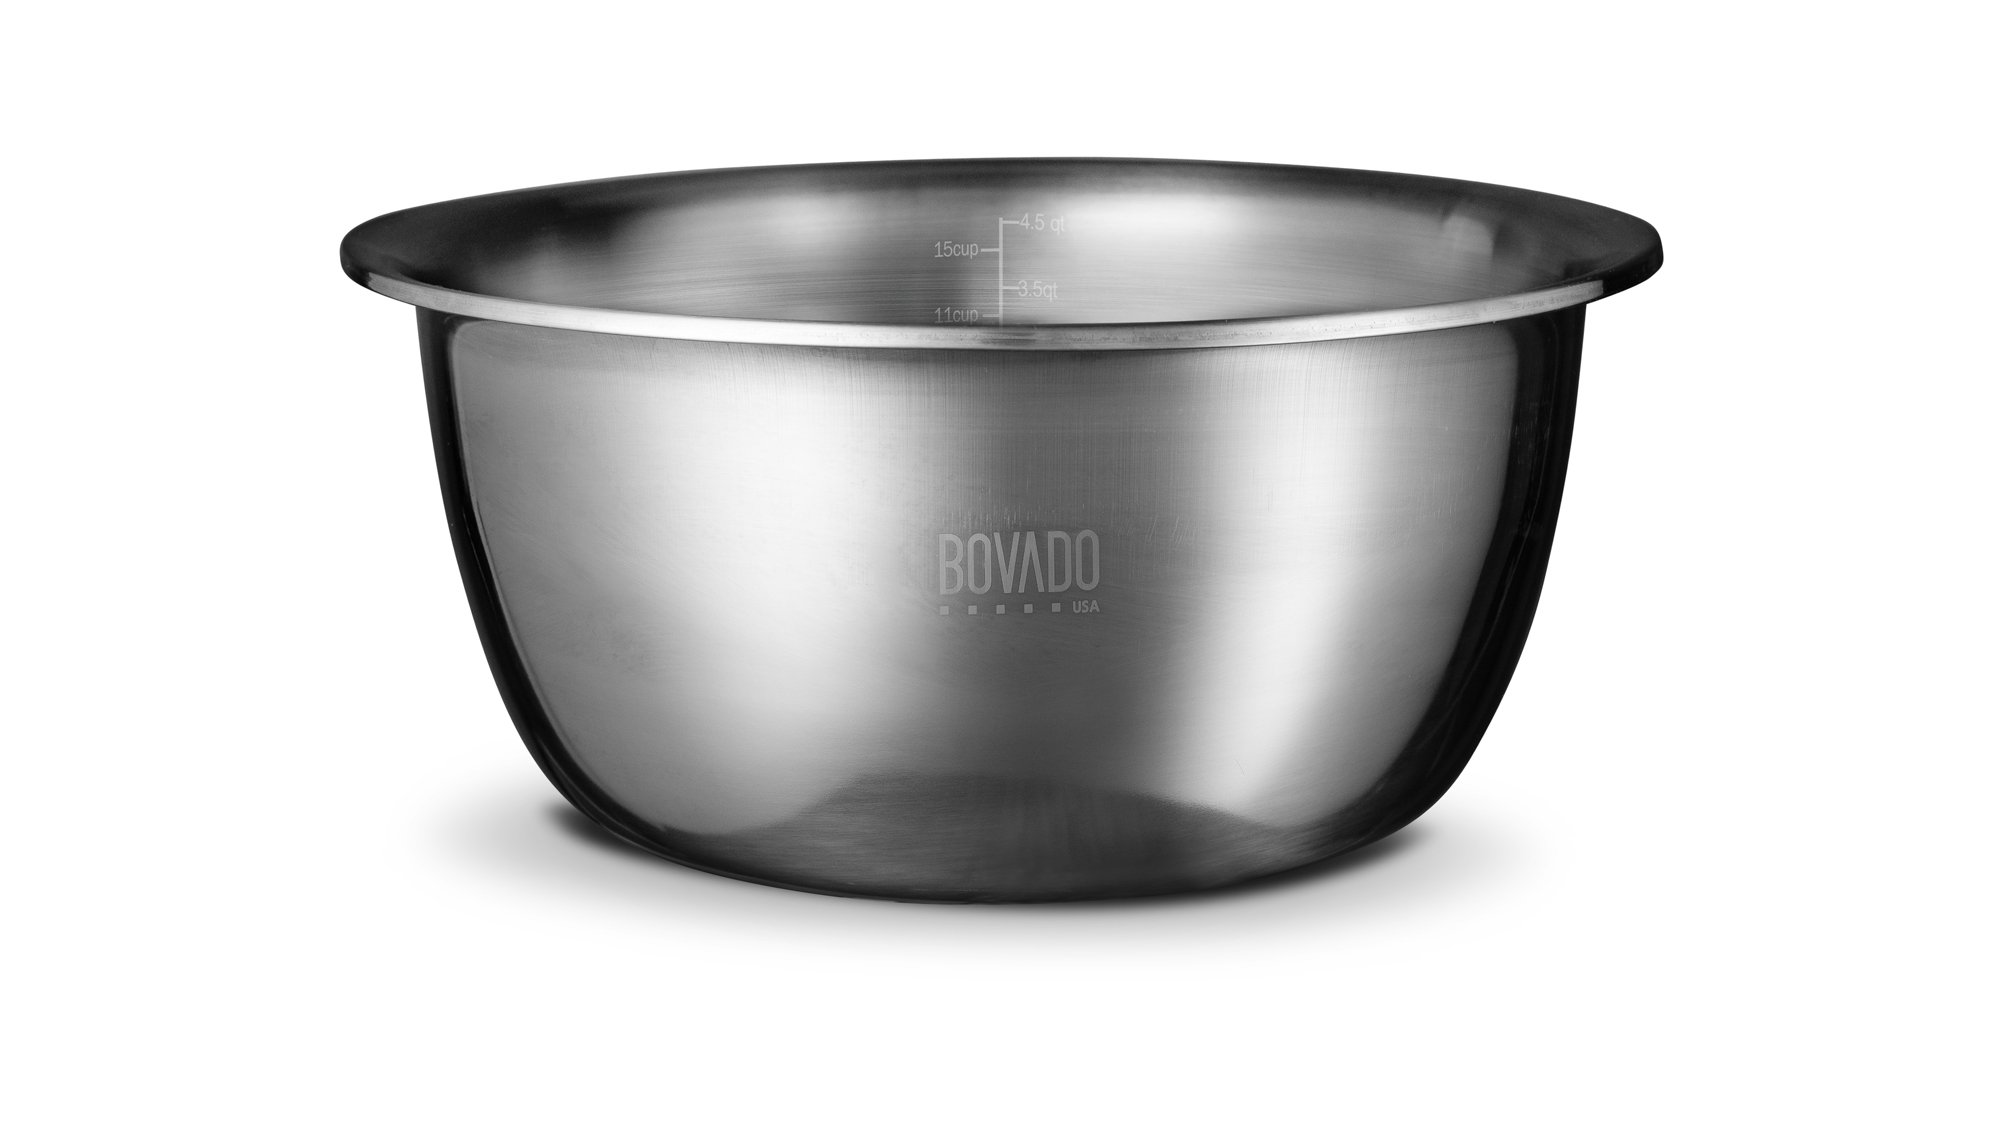 New Design Stainless Steel Mixing Bowl - 5qt - Flat Bottom Extra Wide Non Slip Base, Retains Temperature, Dishwasher Safe - By Bovado USA